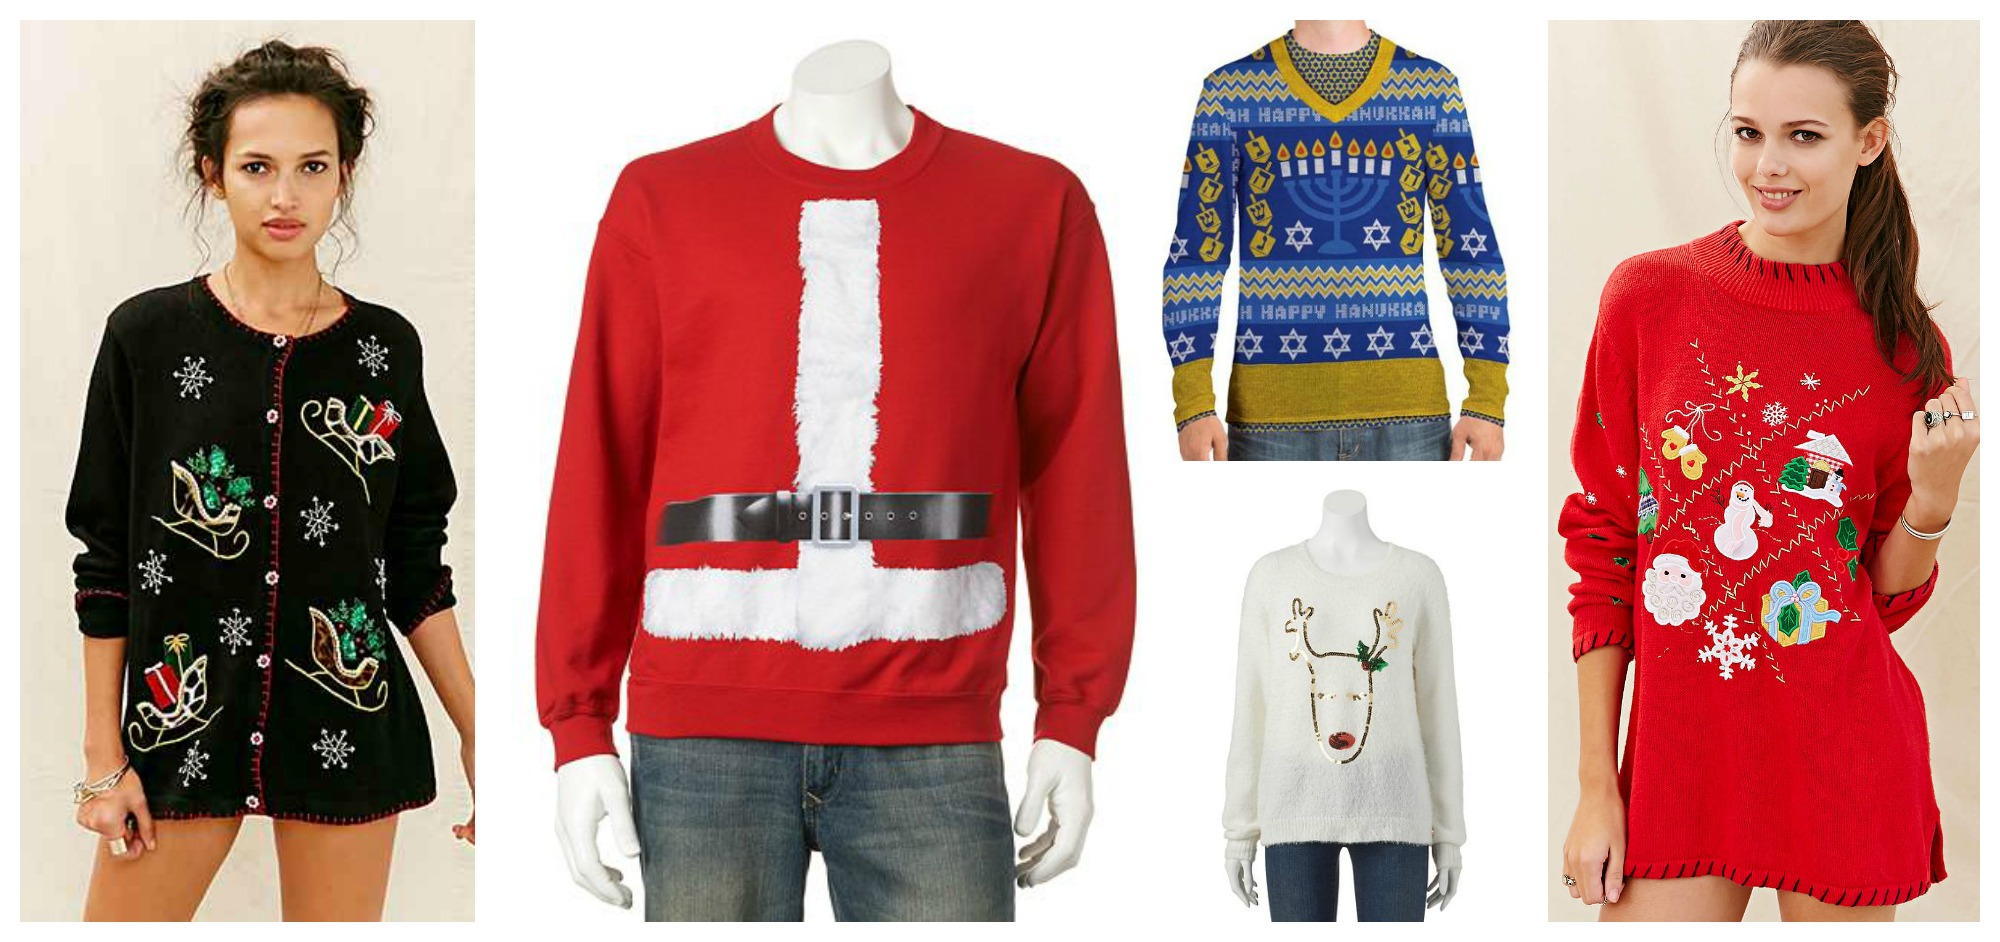 Where To Buy Your Ugly Christmas Sweaters